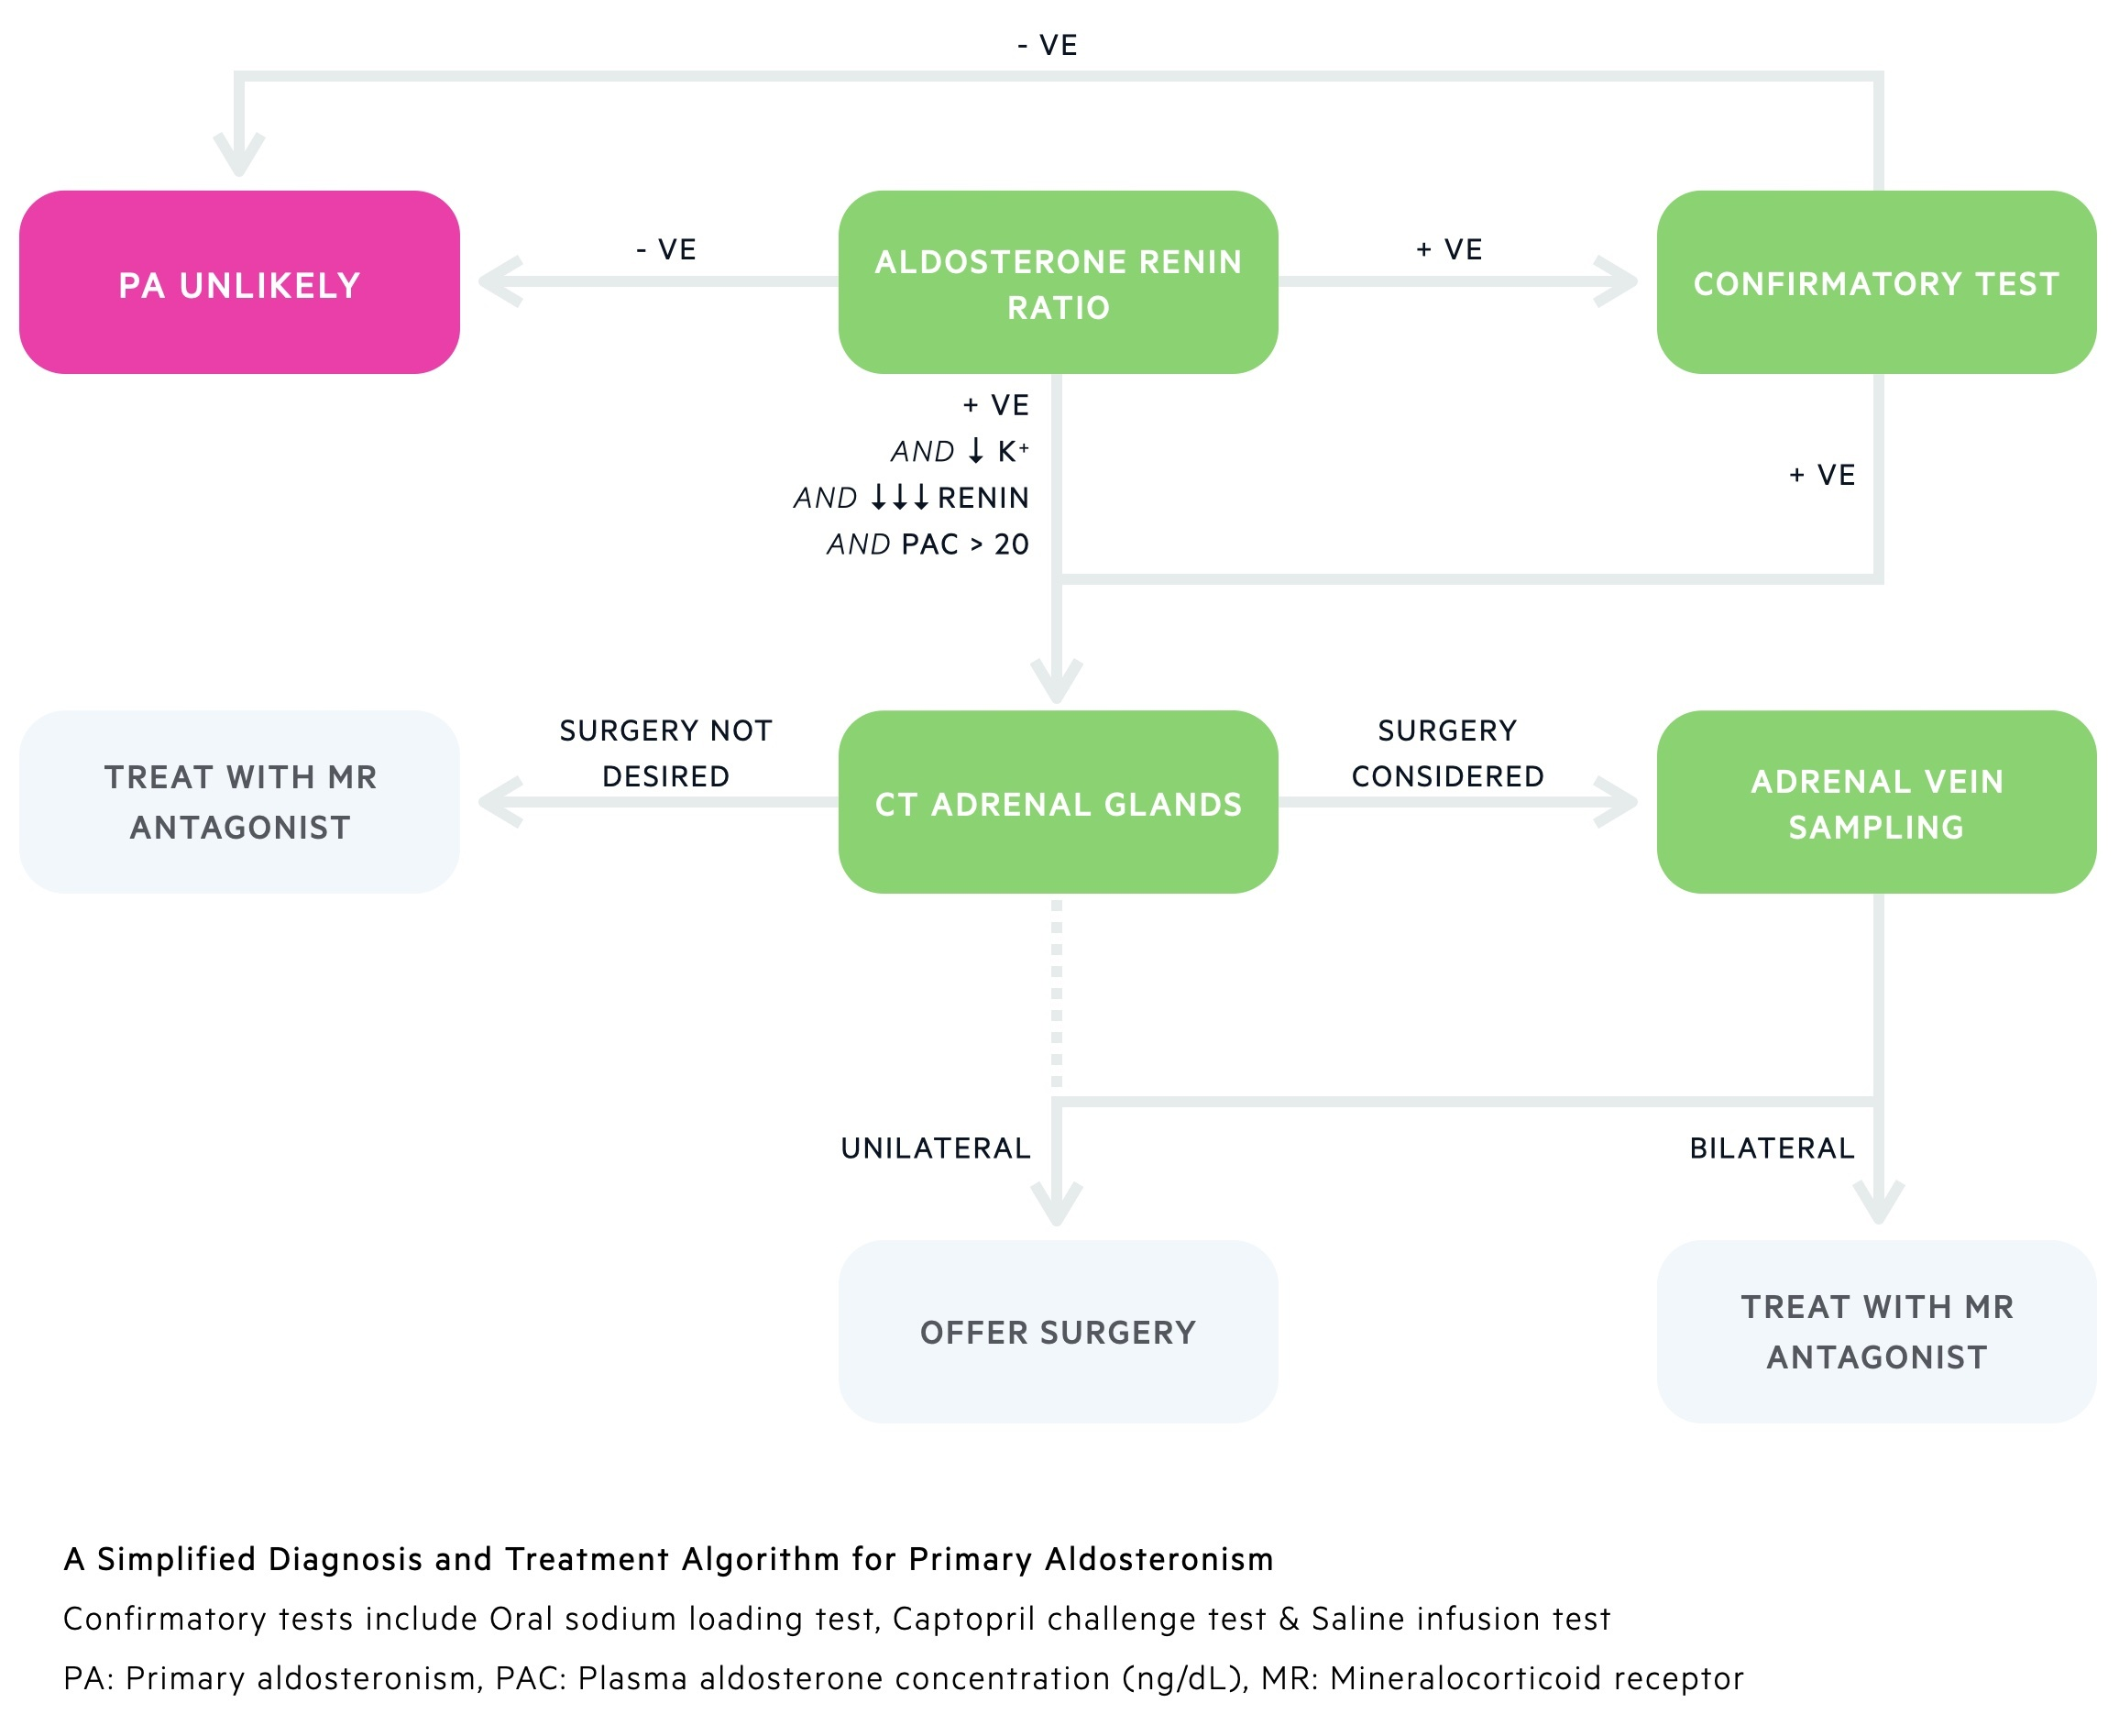 A simplified diagnosis and treatment algorithm for primary aldosteronism